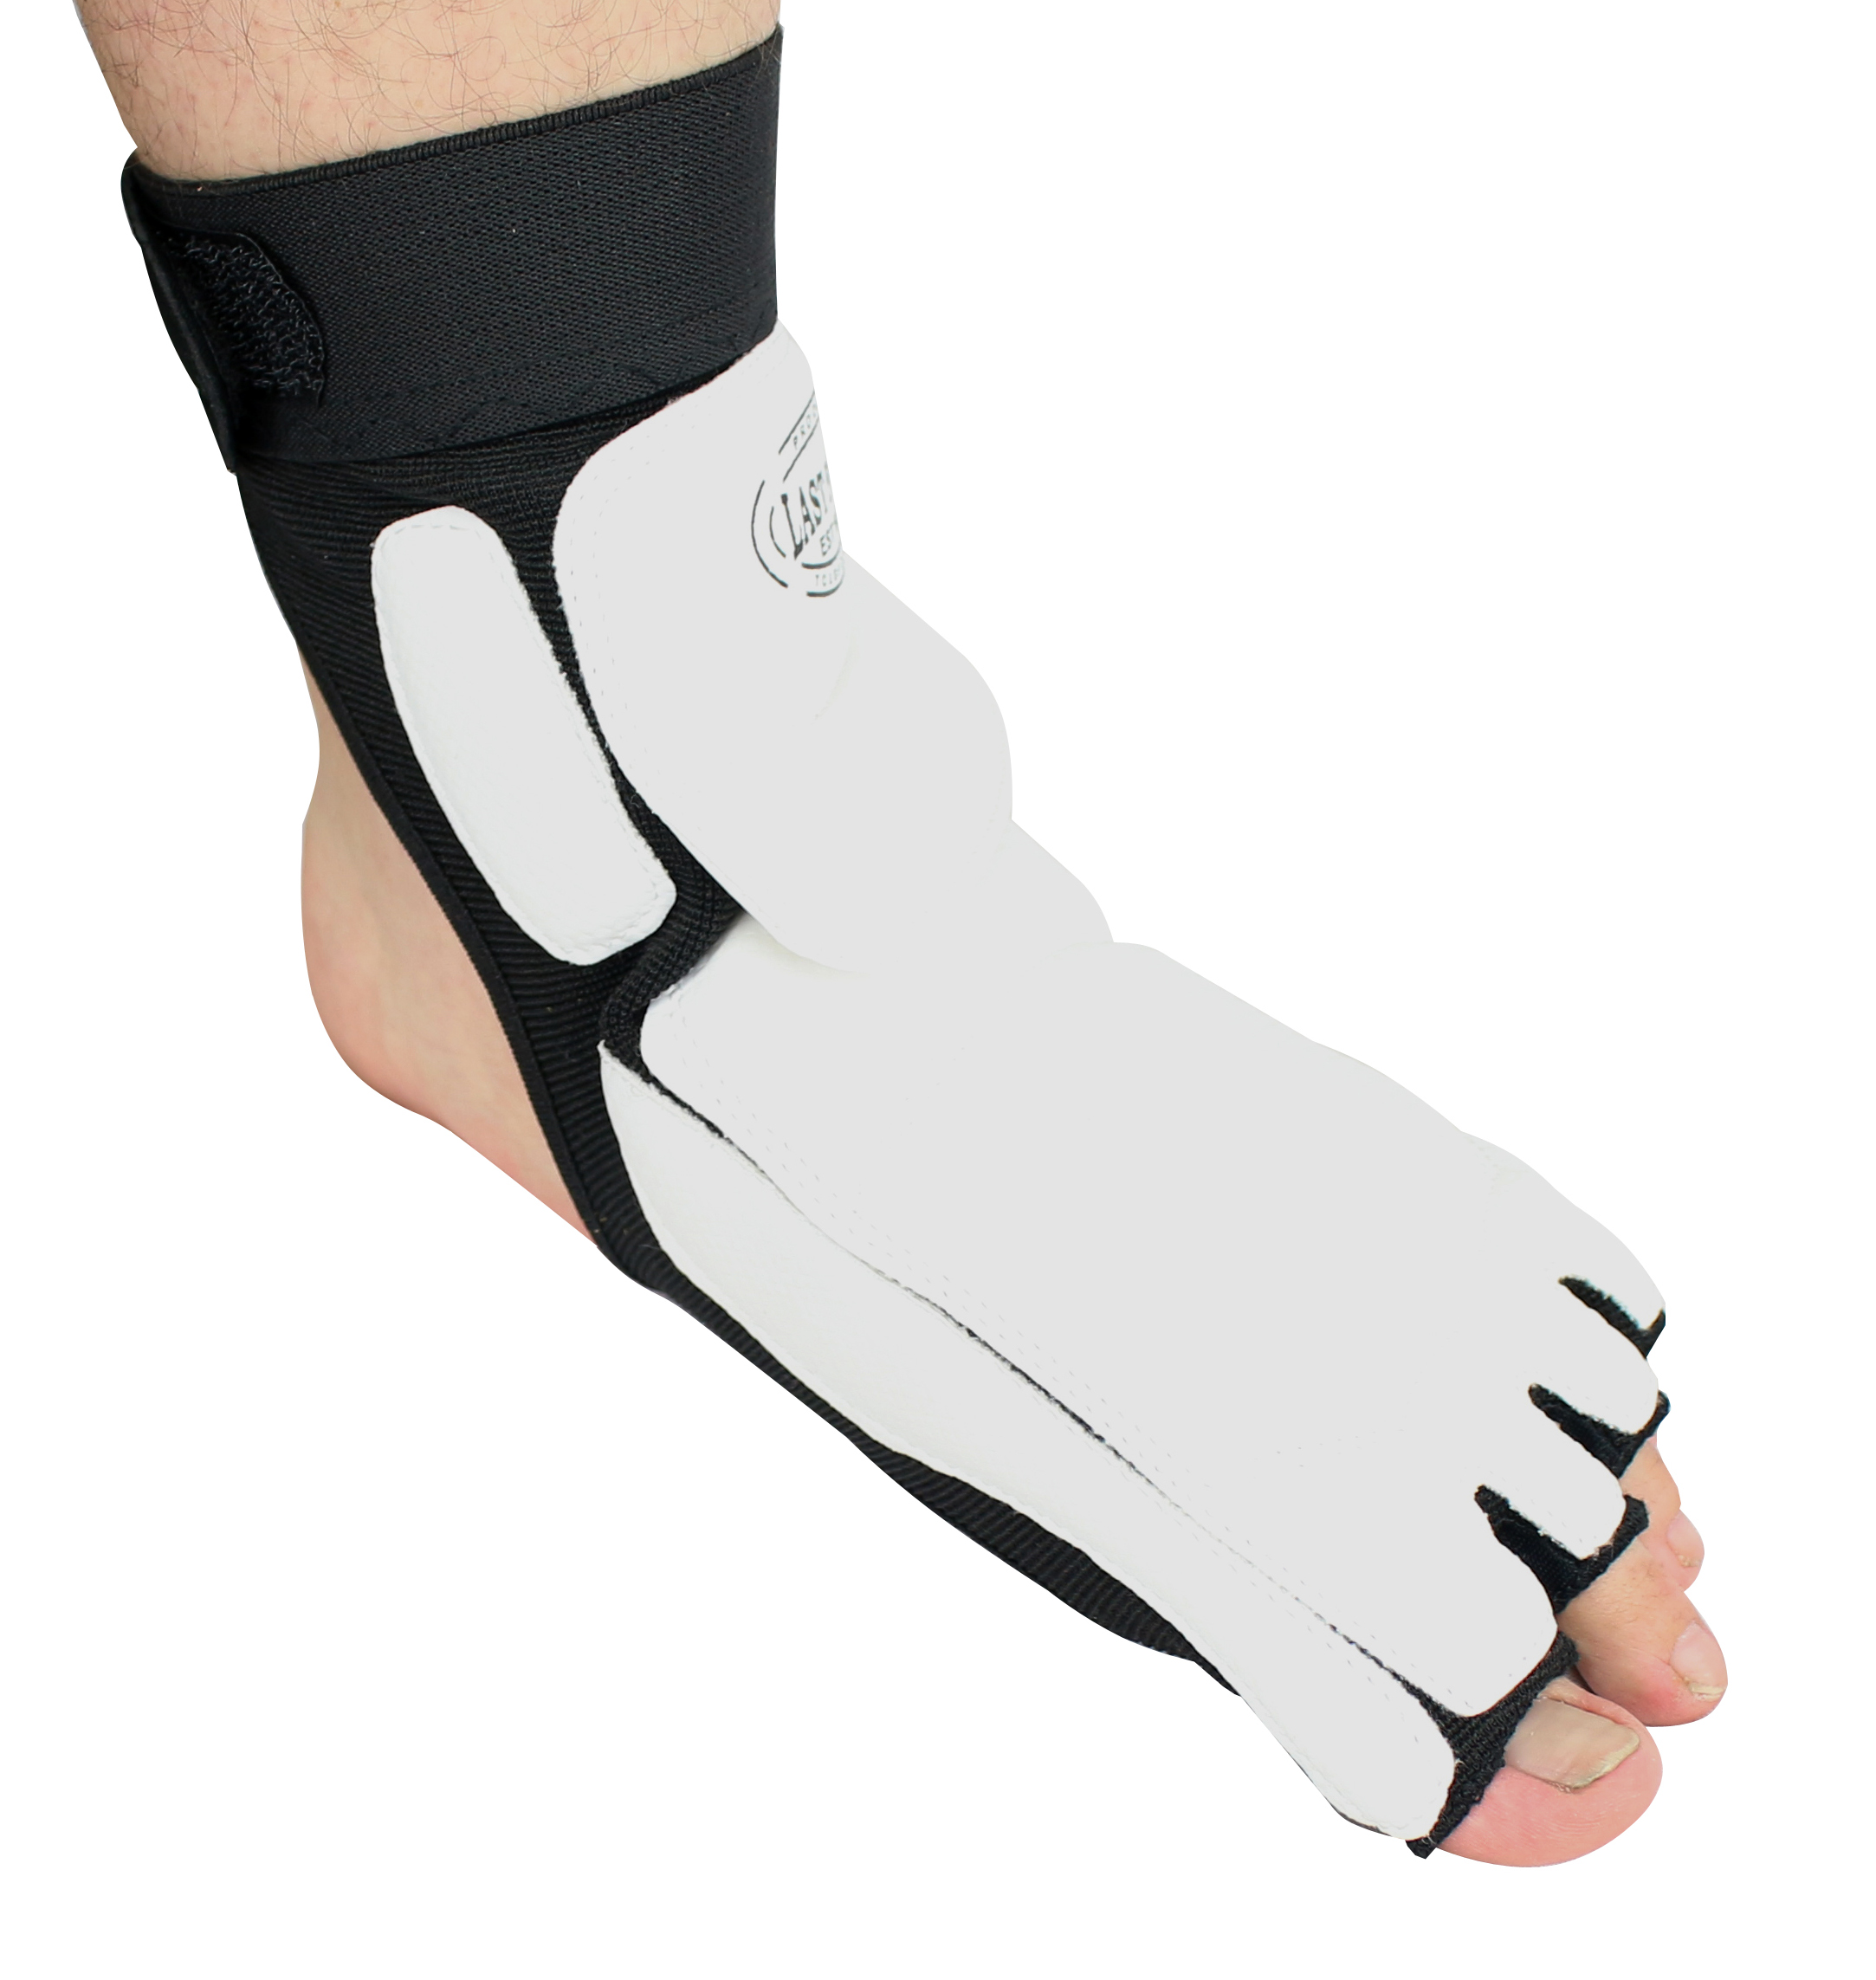 Pair of Last Punch Taekwondo Foot Ankle Support Protector Fighting Foot Guard kick Boxing foot wear